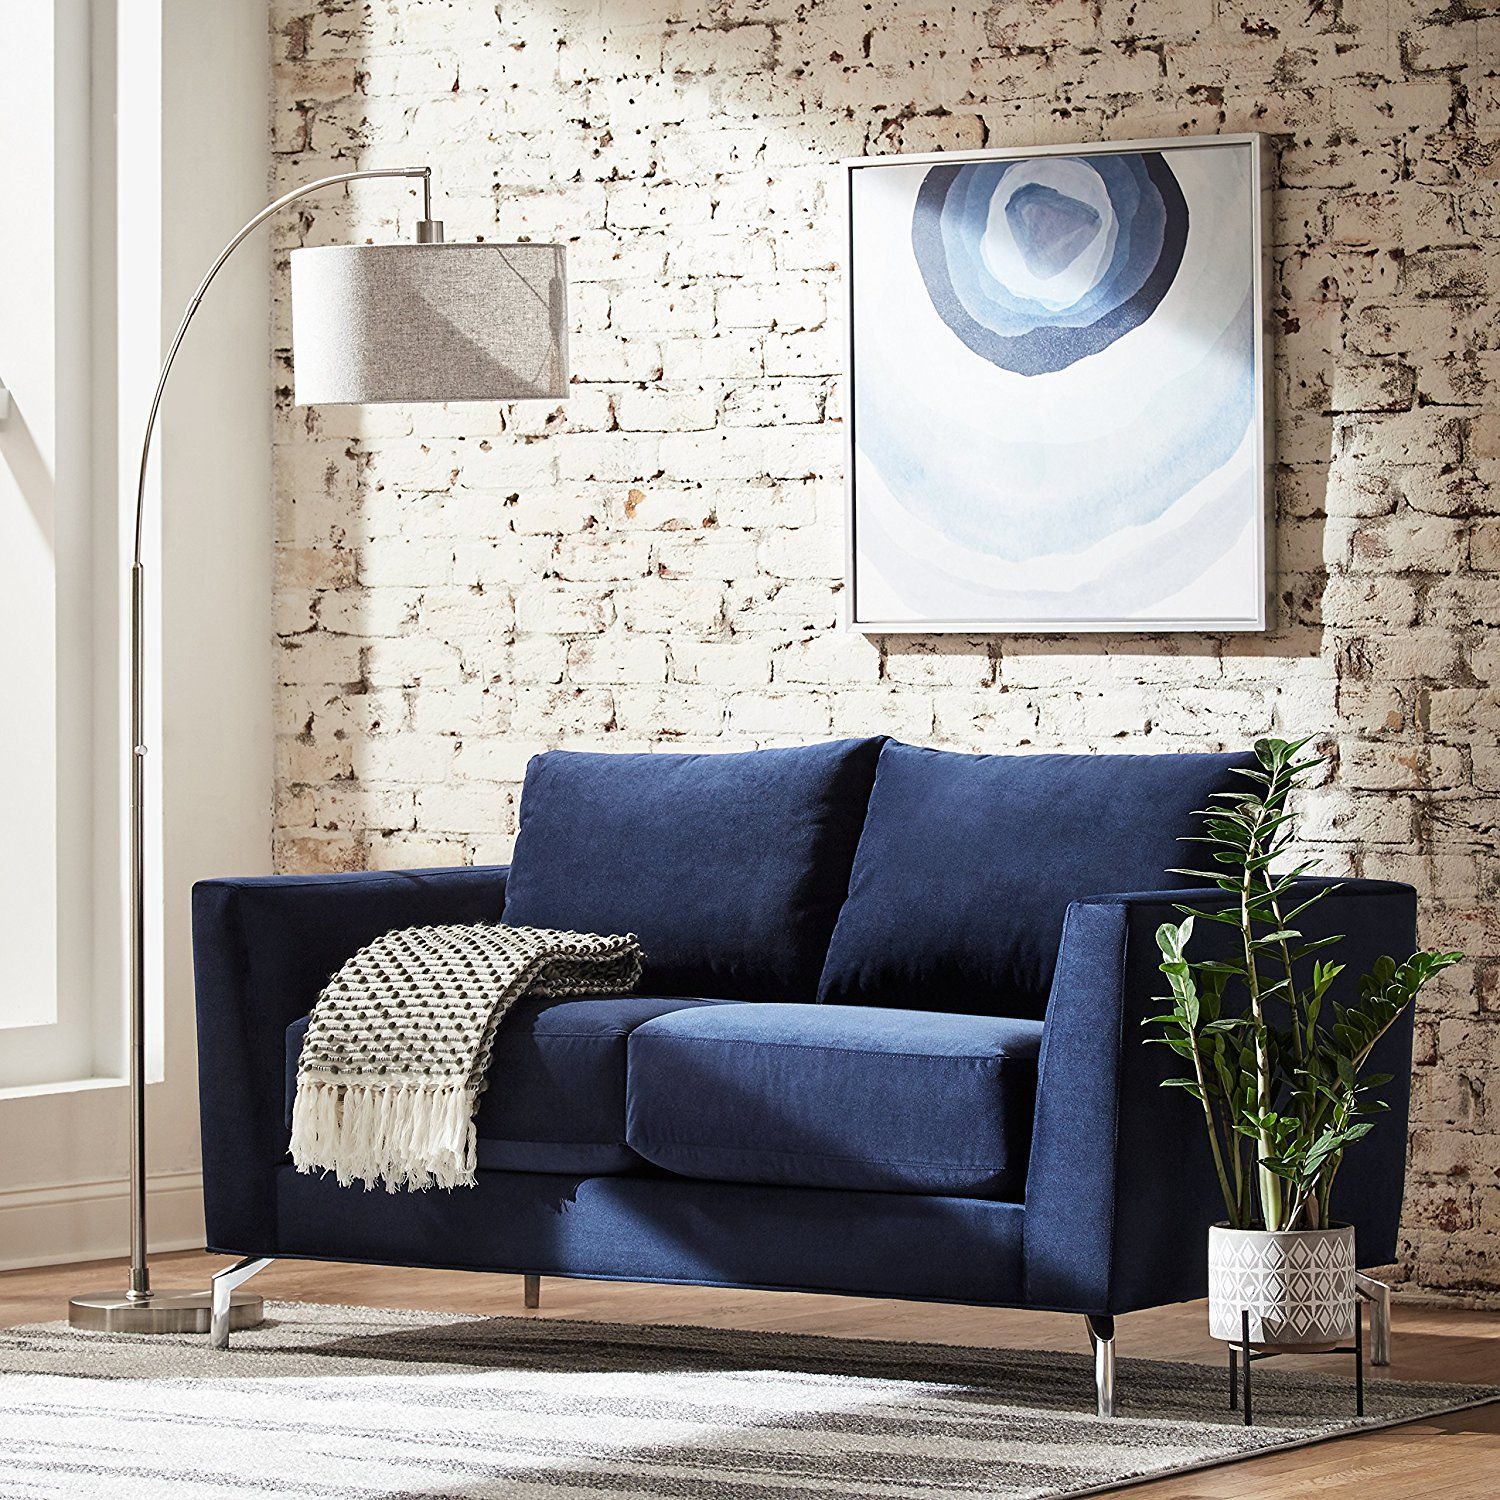 Amazon S Two New Furniture Lines Focus On Small Spaces